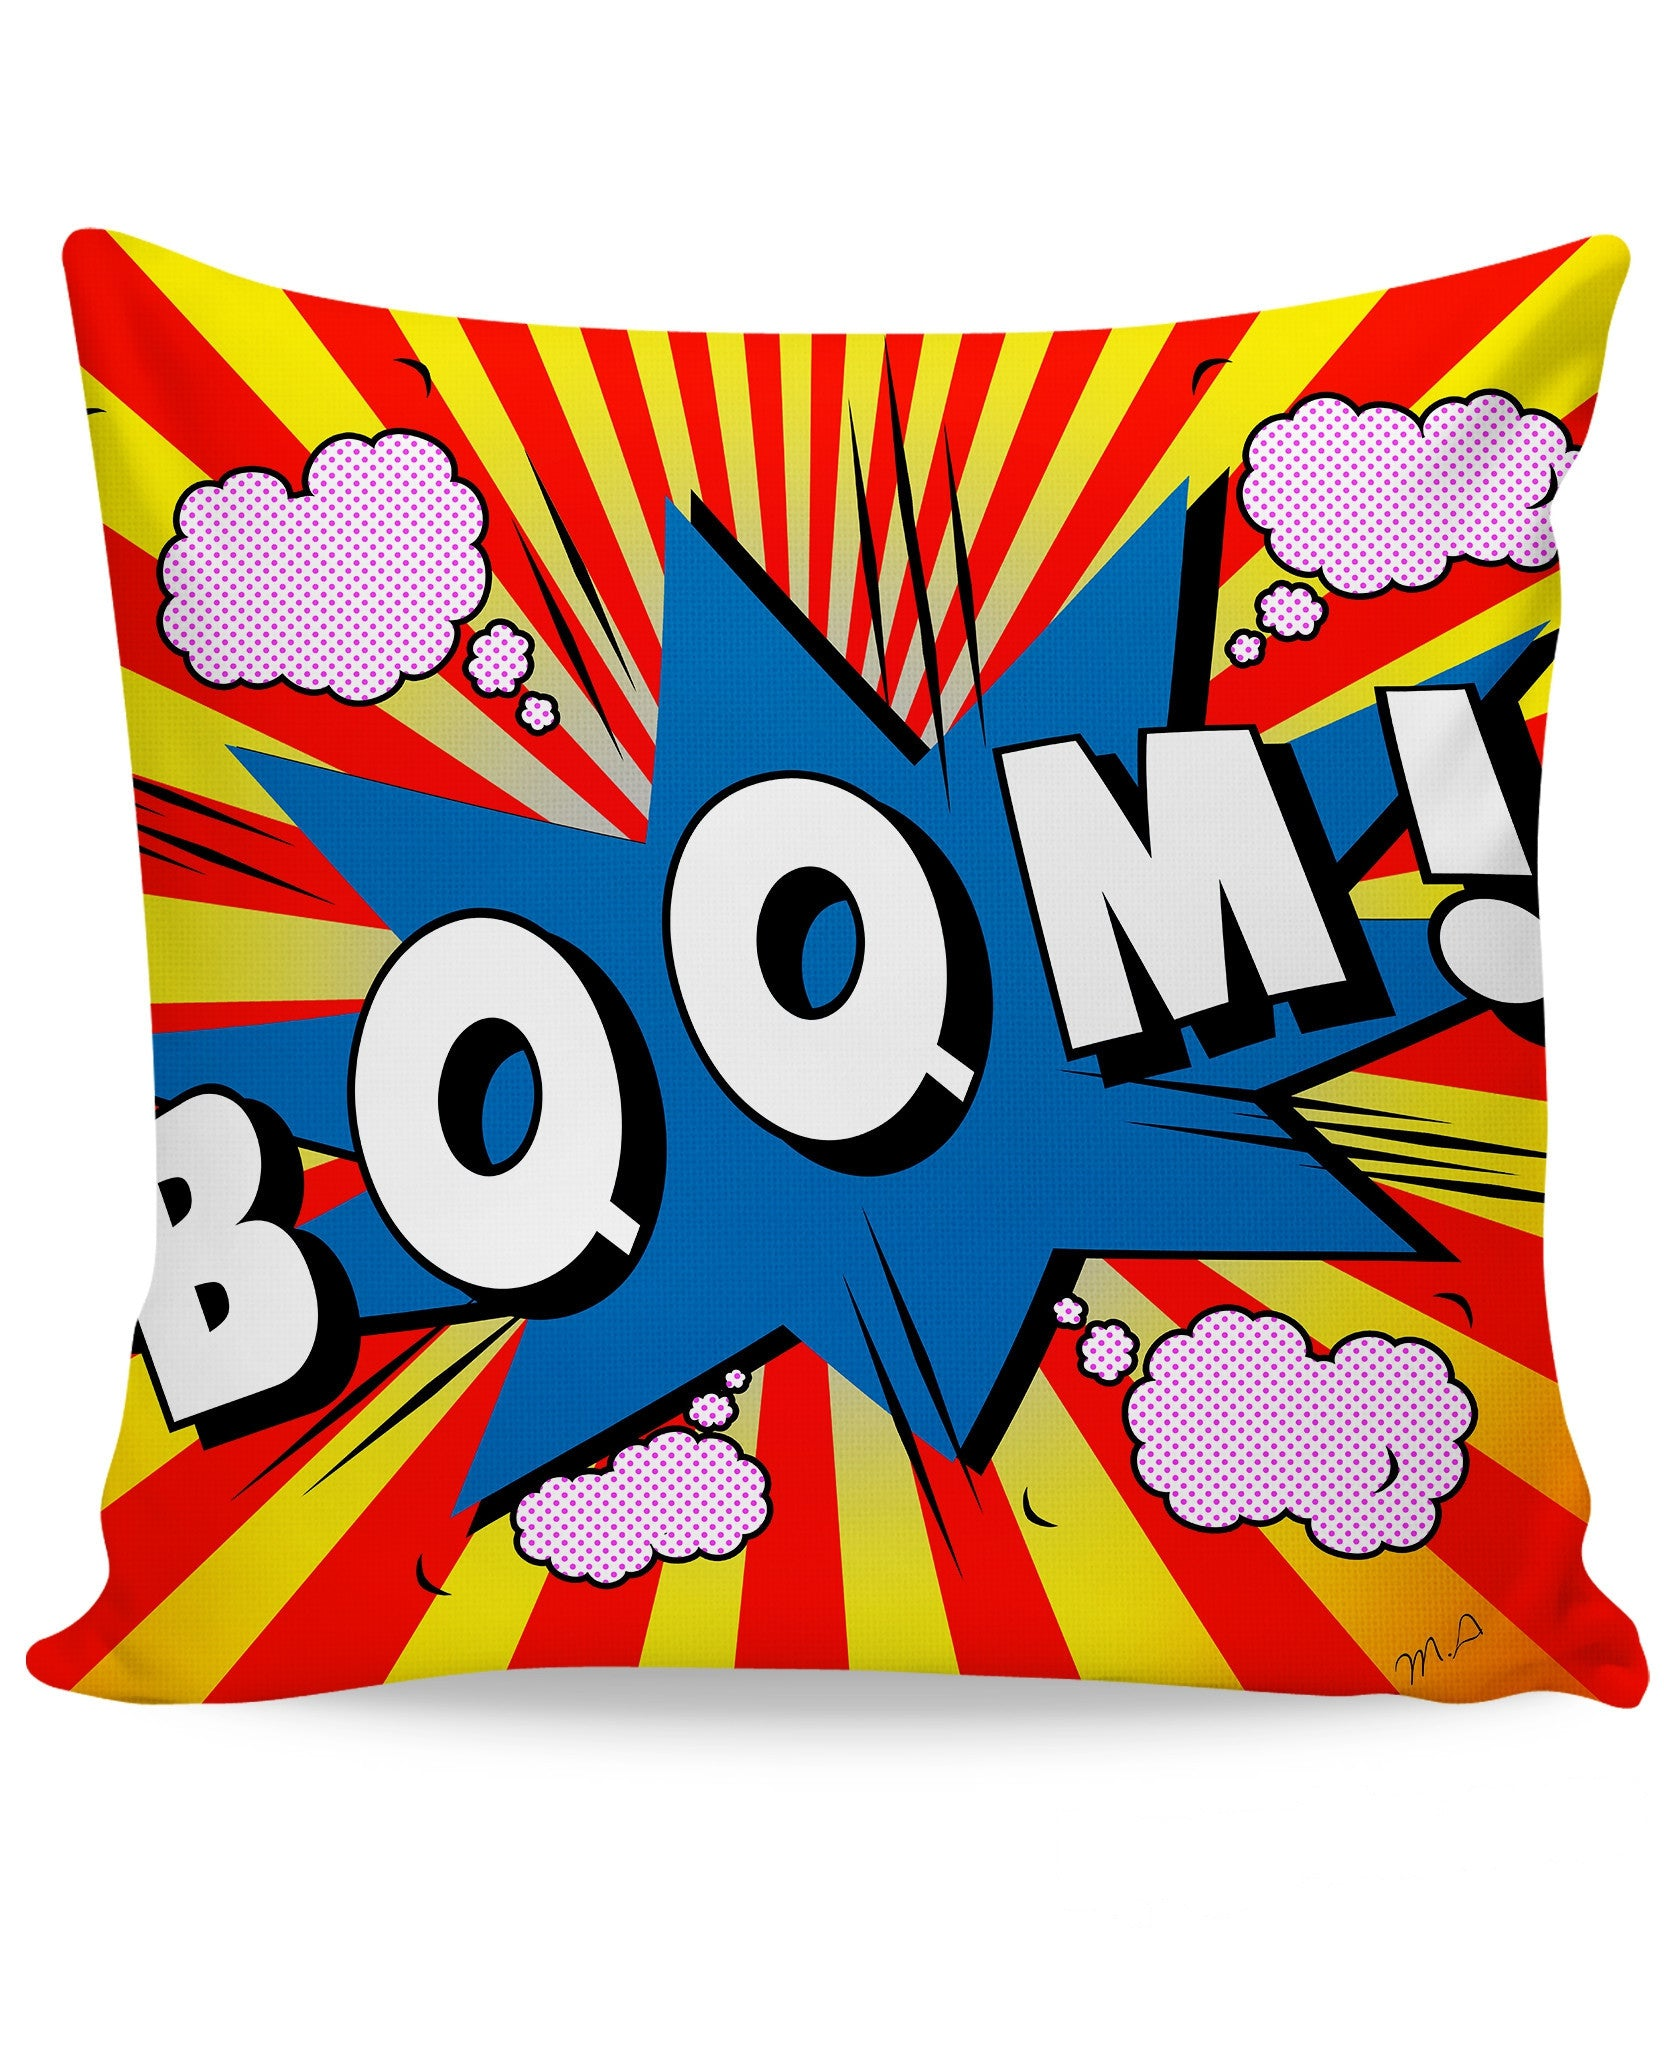 Boom Couch Pillow - TShirtsRUS.co